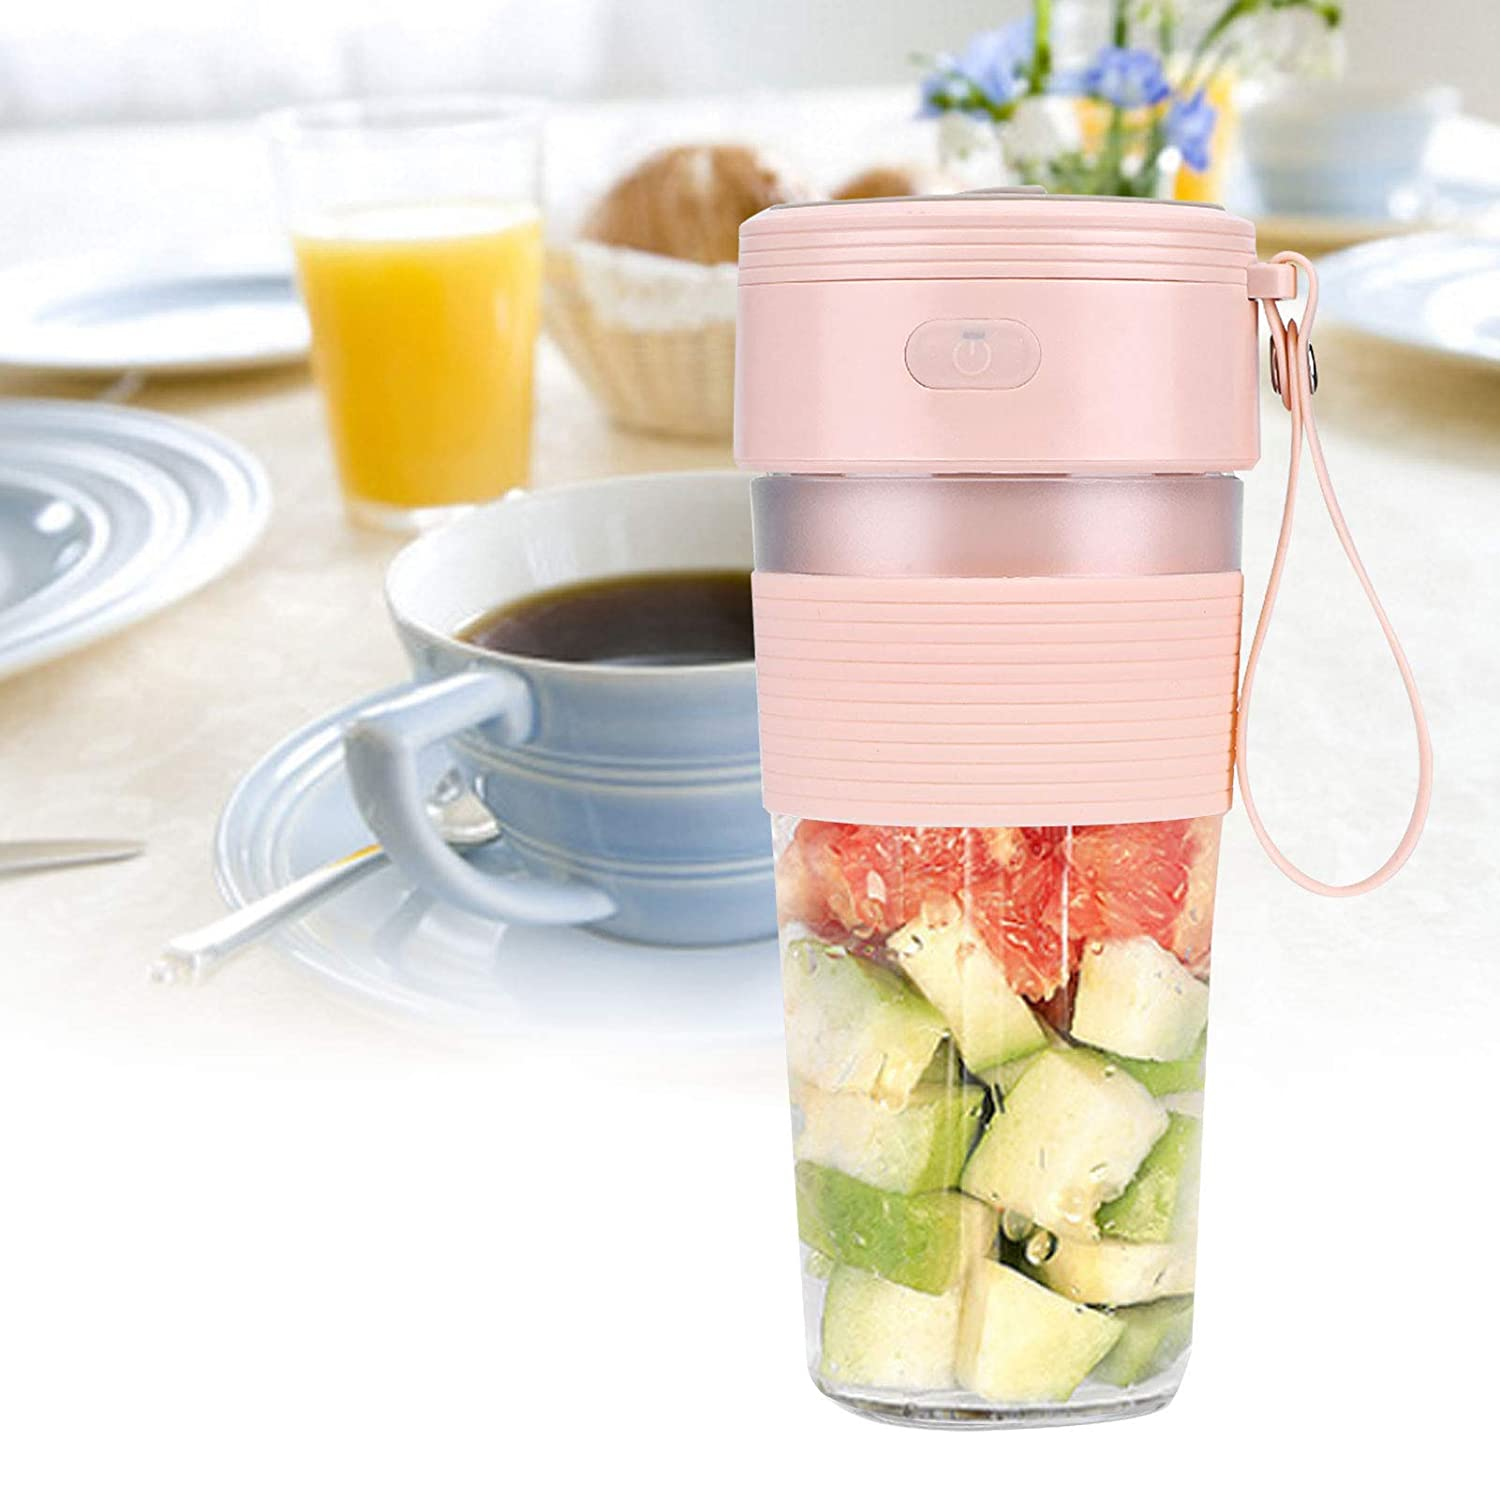 Astibym Food Grade Silicone Mini Juicer Double Blade Ranking TOP7 NEW before selling ☆ USB S-Type